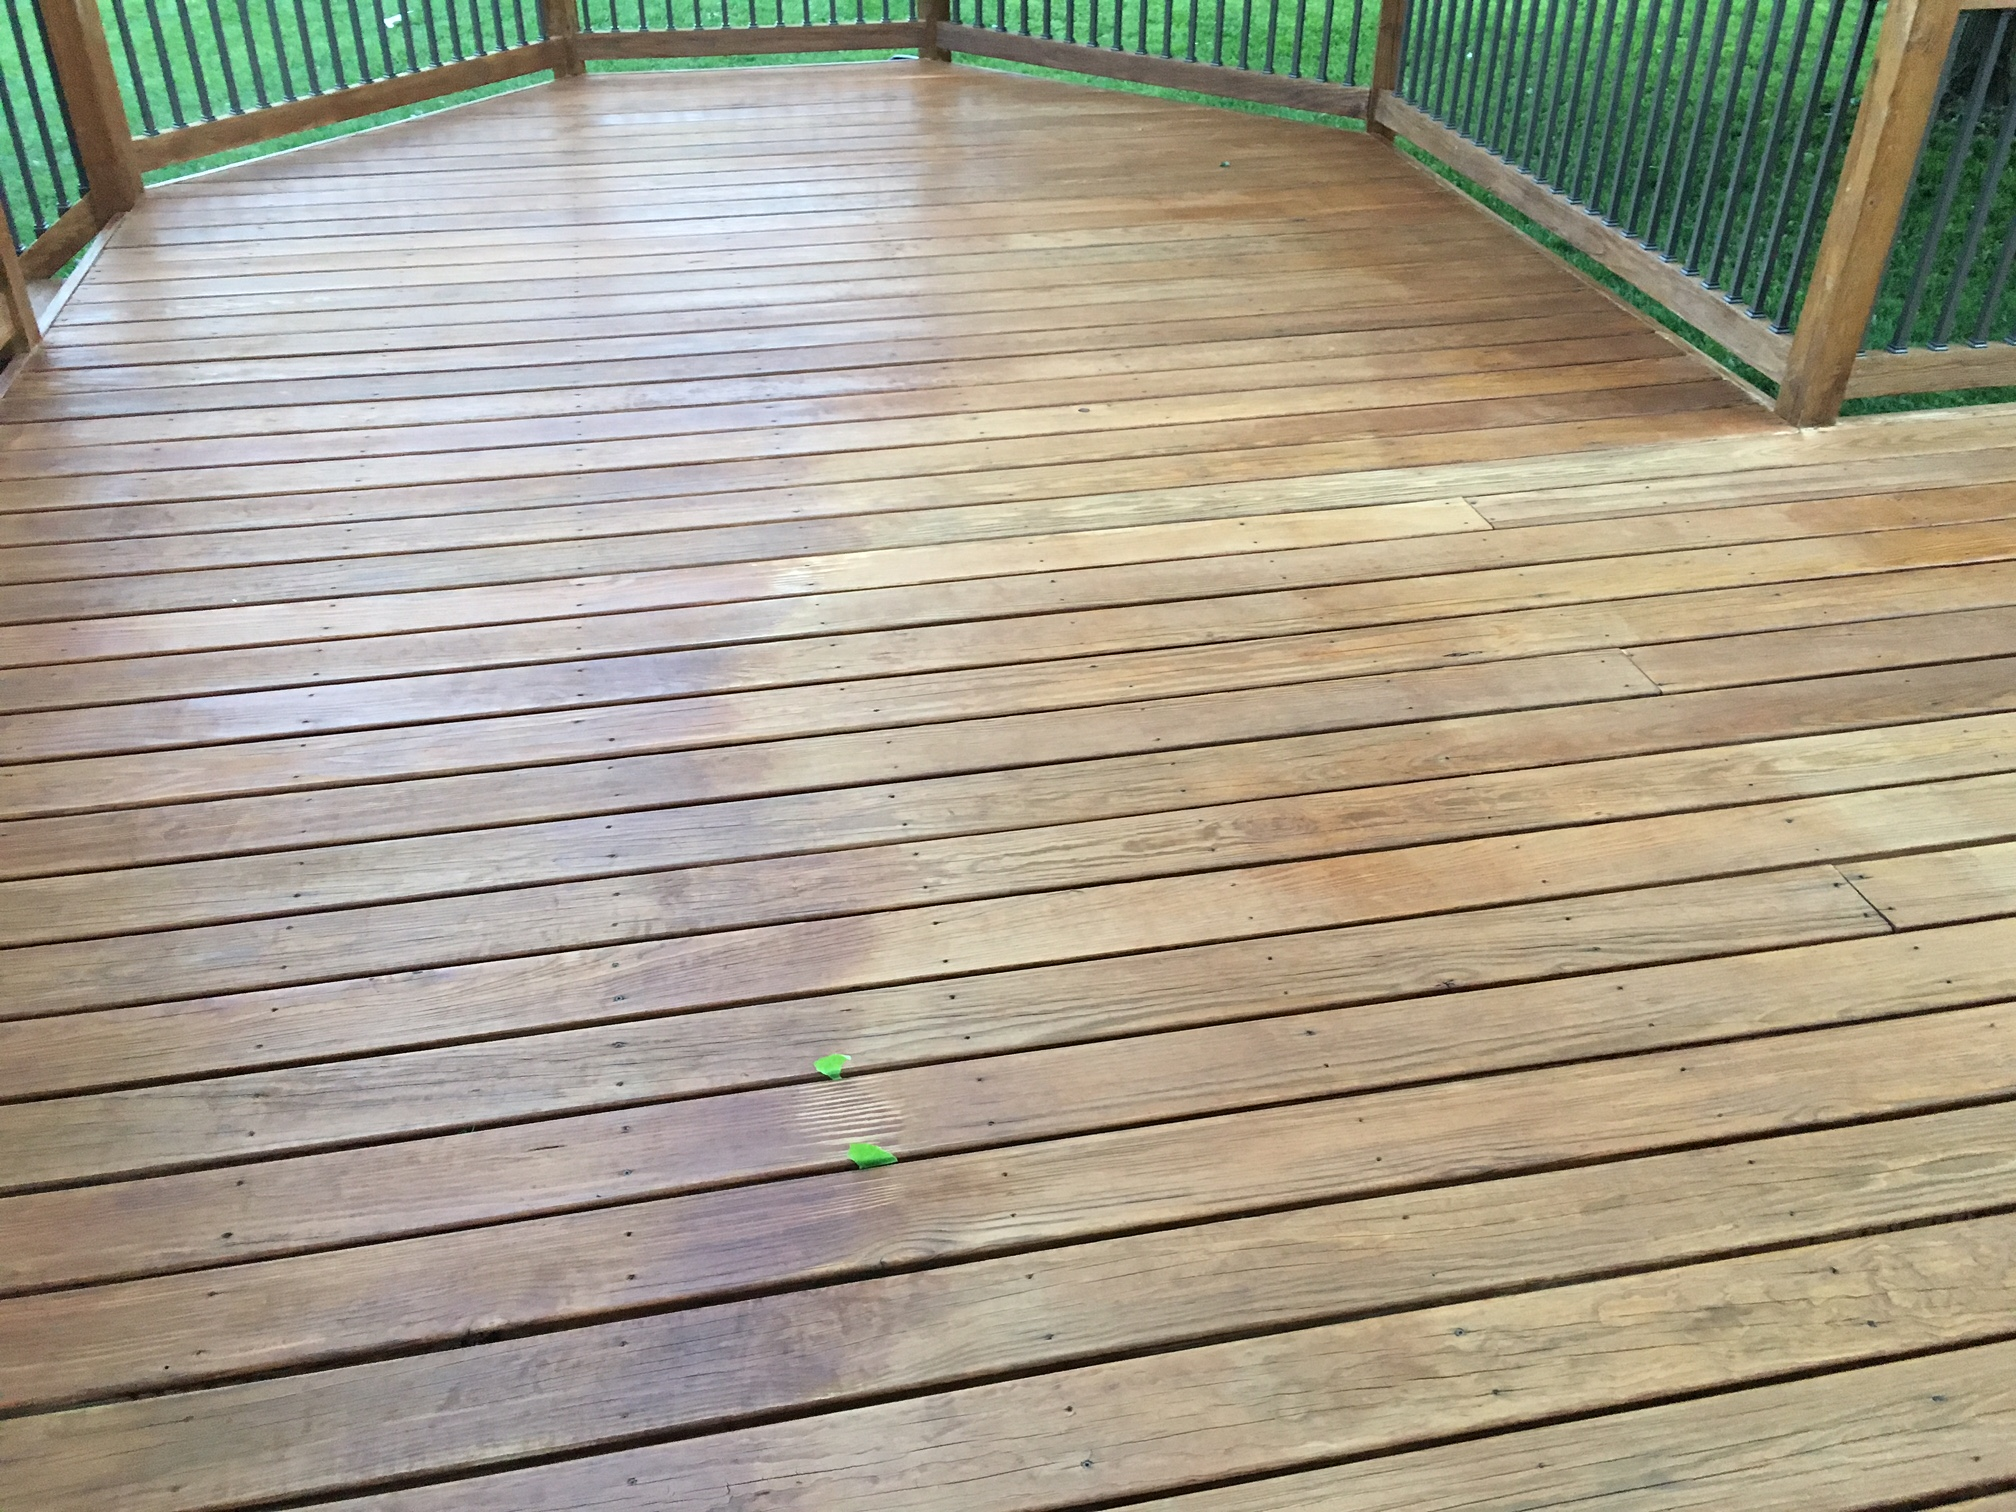 Deck Boards Blotchy How To Fix Used Defy Extreme Deck Stain Questions And Answers Best Deck Stain Reviews Ratings Forum